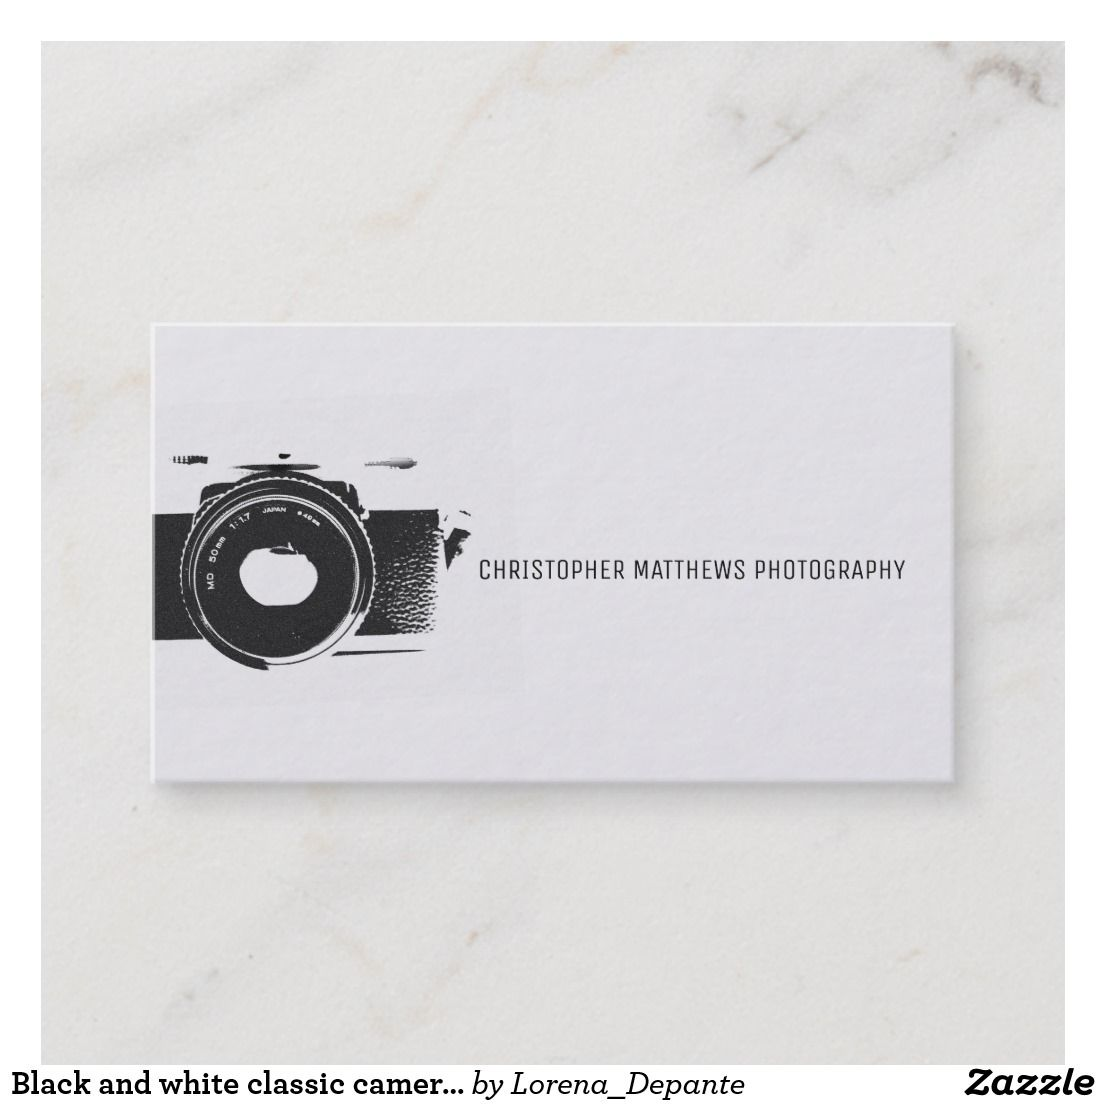 Classic Camera Artistic Black White Photographer Business Card Zazzle Com In 2021 Photographer Business Cards Photographer Business Card Design Photography Business Cards Template